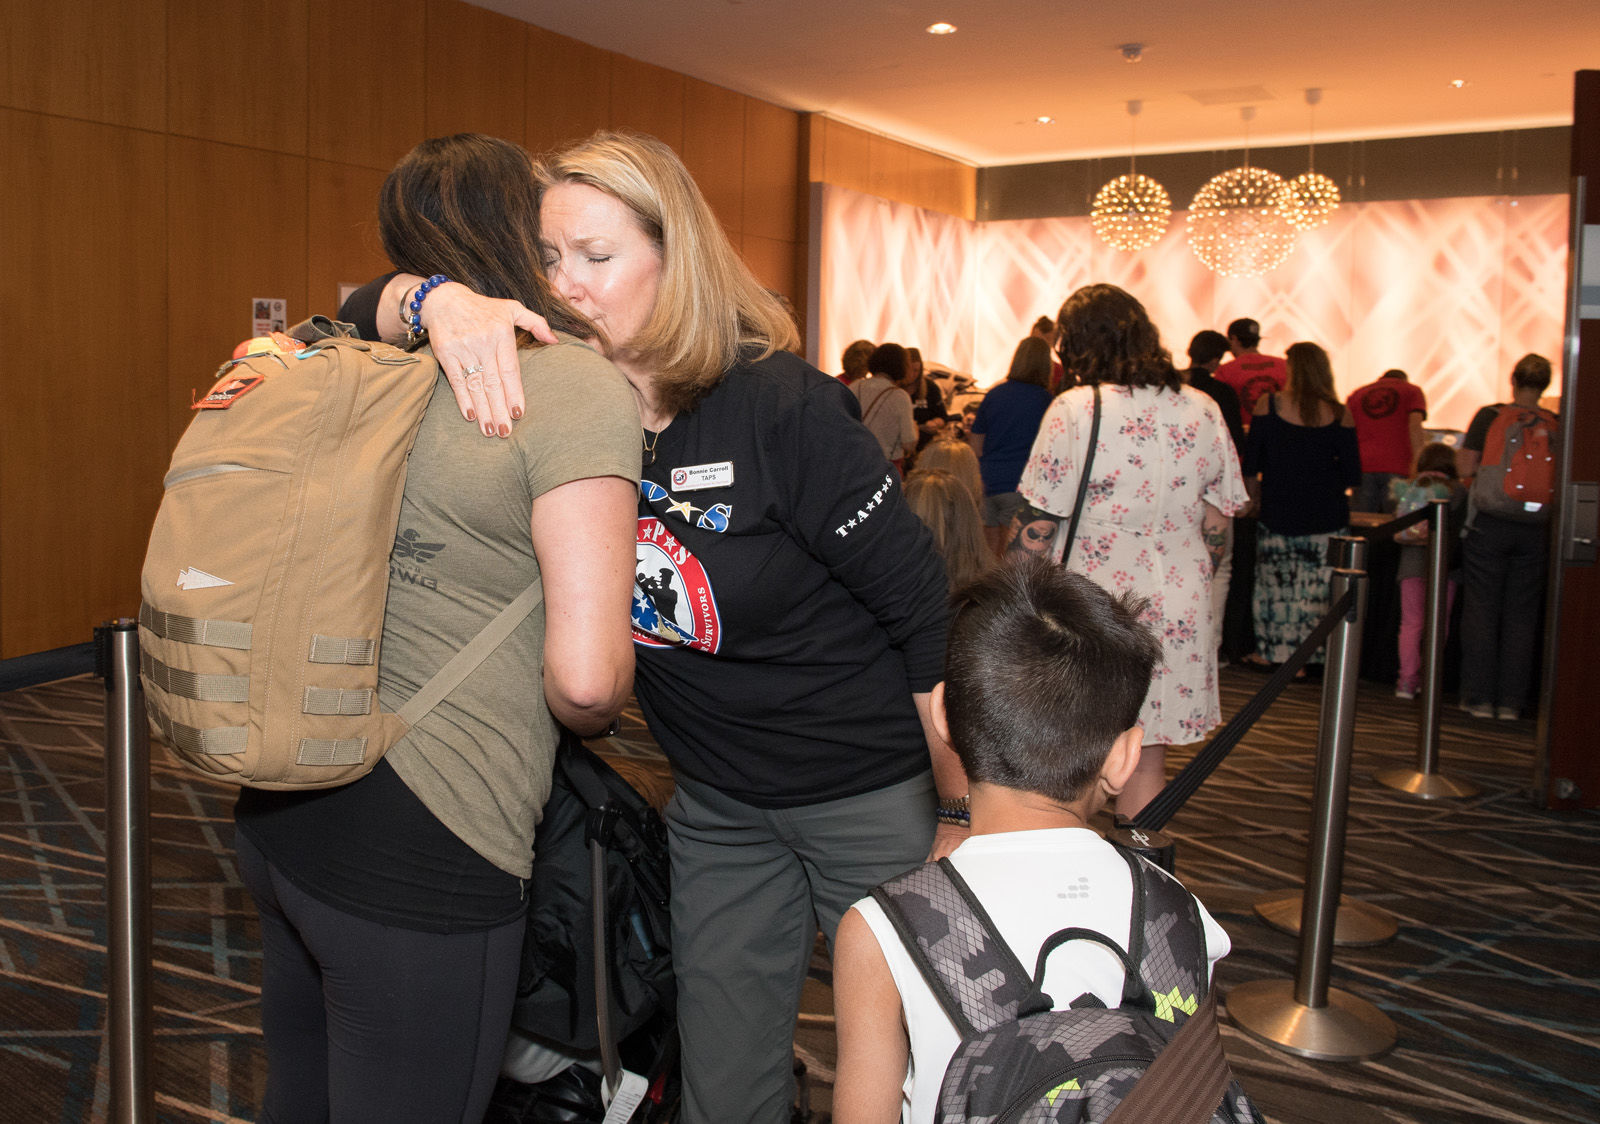 The Tragedy Assistance Program for Survivors (TAPS) hosted their annual National Military Survivor Seminar and  Good Grief Camp in Arlington, Va., May 24-28. (U.S. Army photos by Staff Sgt. Brandy N. Mejia)